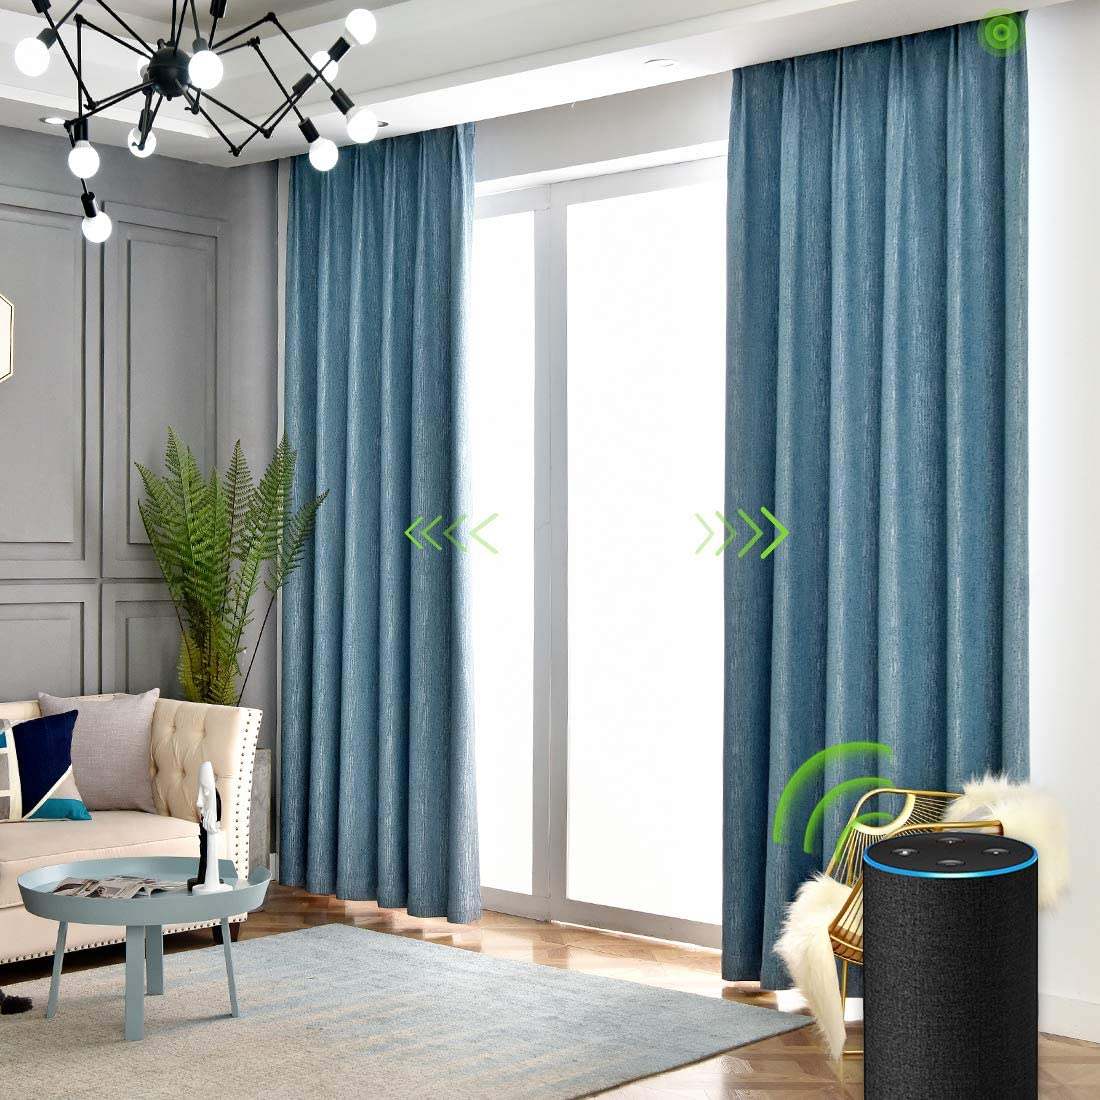 Yoolax Motorized Electric Blackout Curtain Texture Thermal Insulated Drapes Compatible with Alexa and Google Home Remote Control Smart Curtain Customized (Blue, W156XH95(Cover Area))